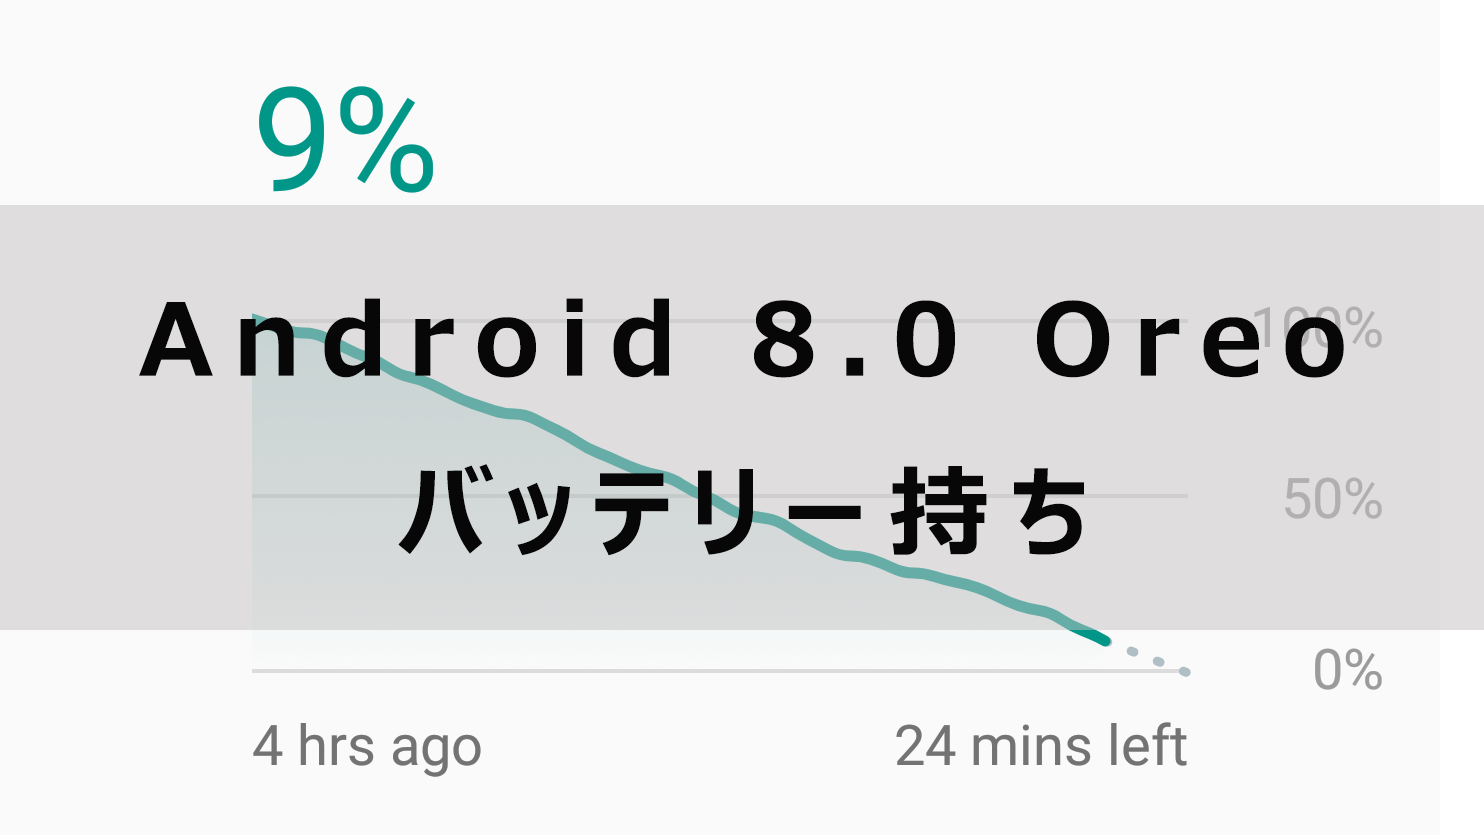 Android 8.0 Oreoのバッテリー持ち